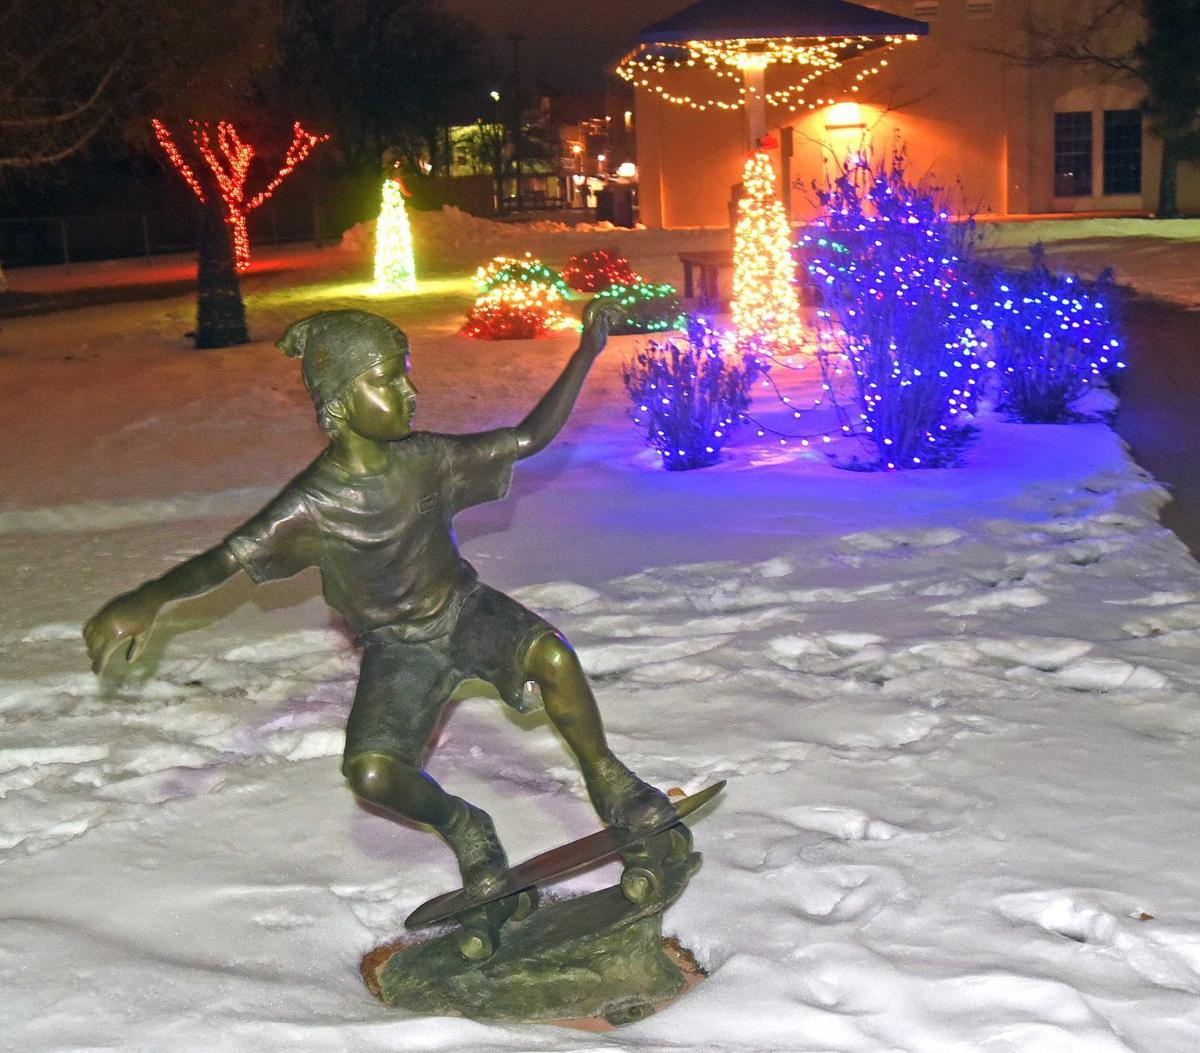 Christmas Lights Bismarck Nd 2020 Bismarck holiday lights tradition begins; another continues